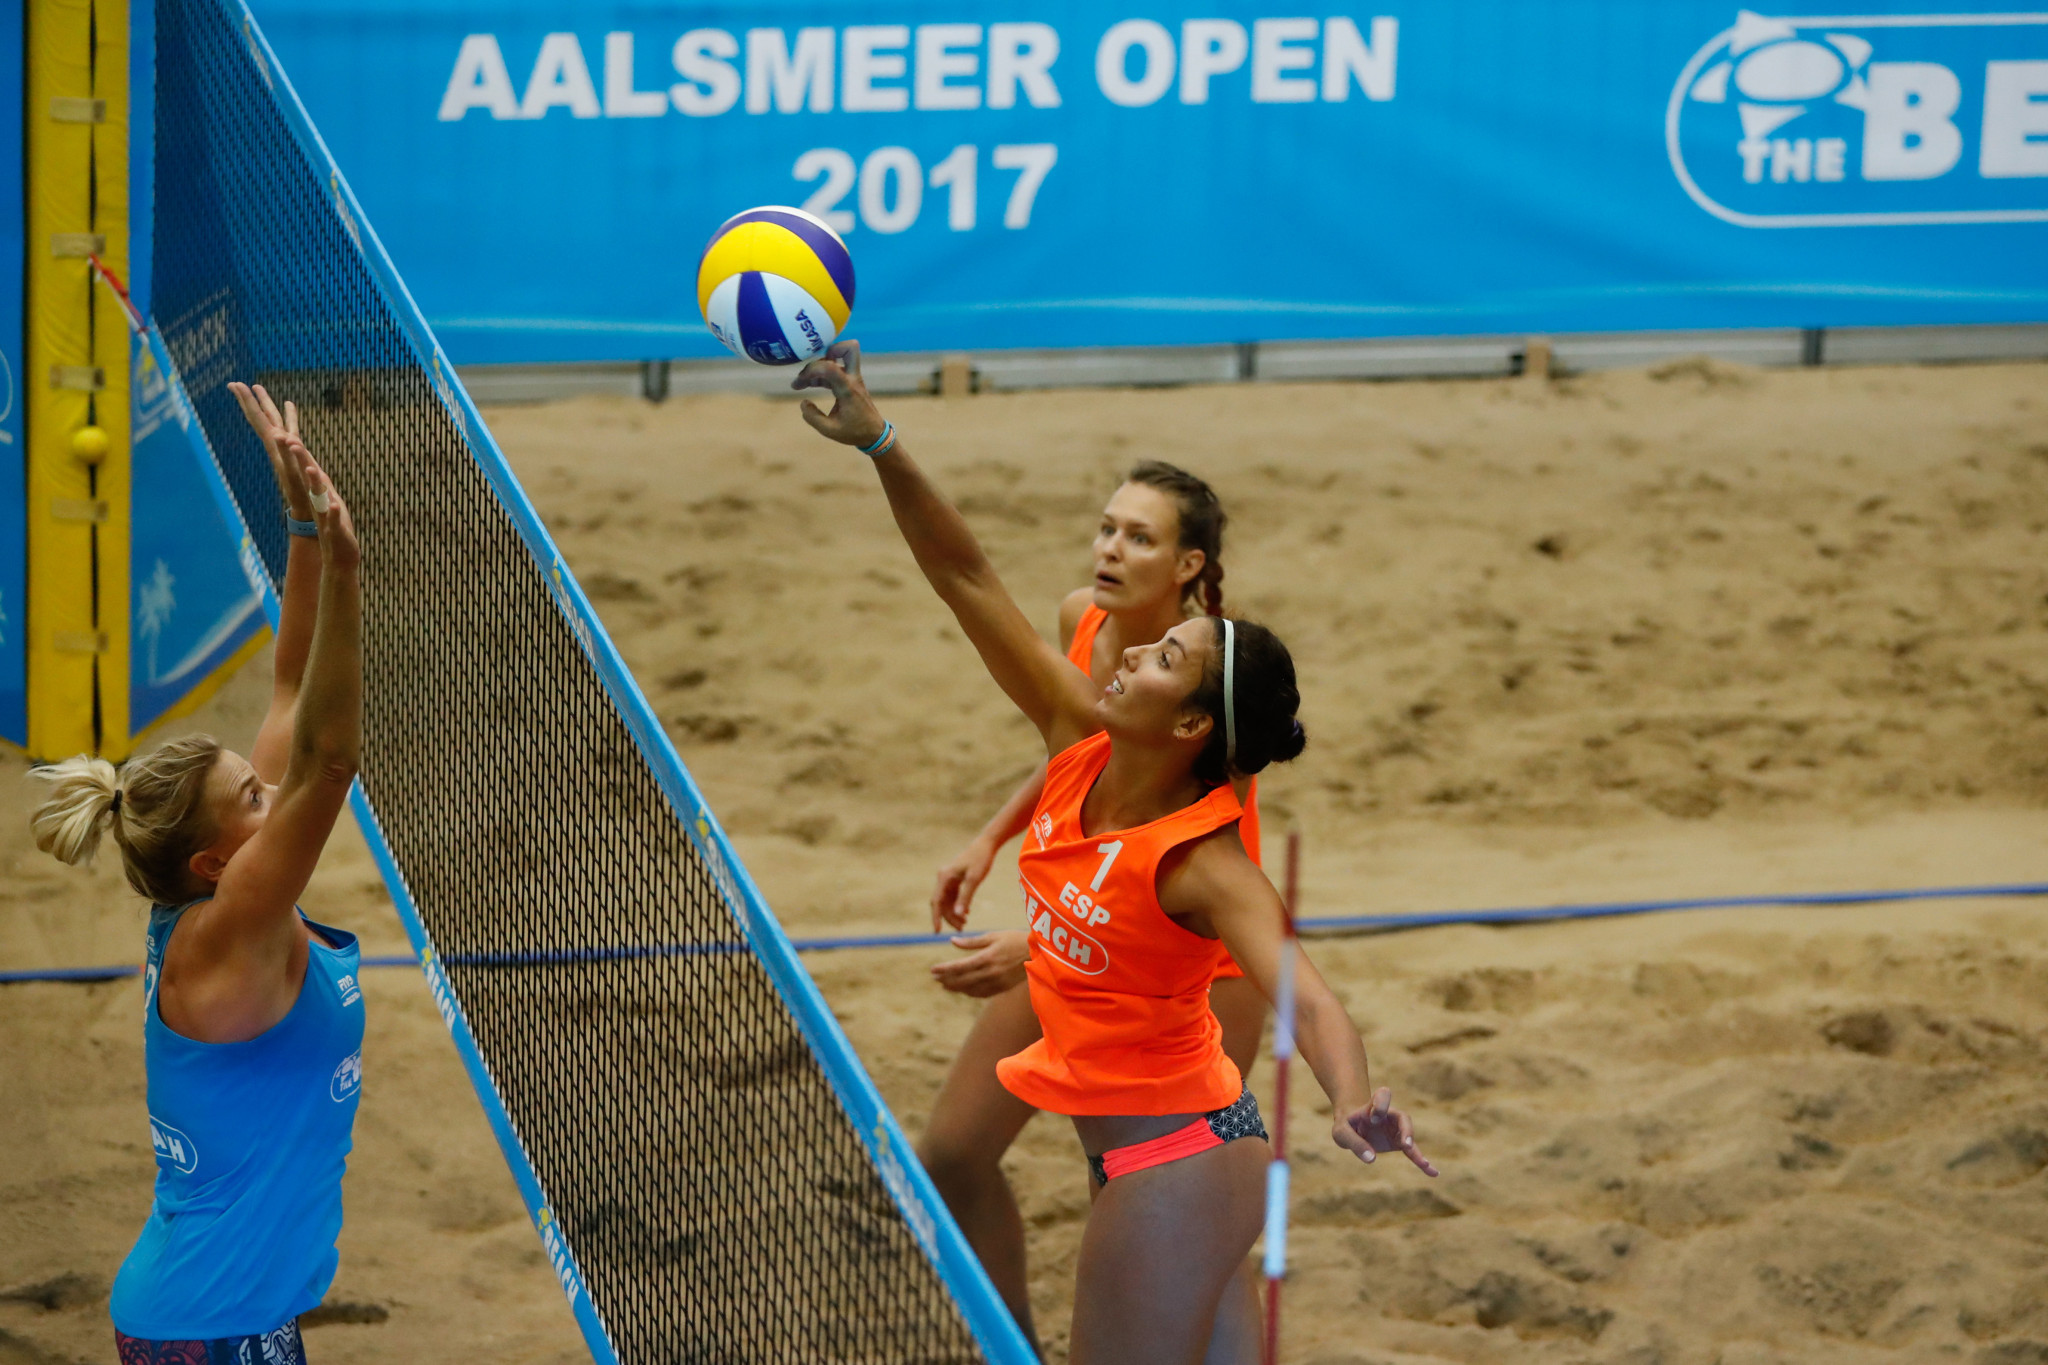 Spain's Paula Soria Gutierrez and Amaranta Fernandez Navarro have safely made it through to the second round ©FIVB